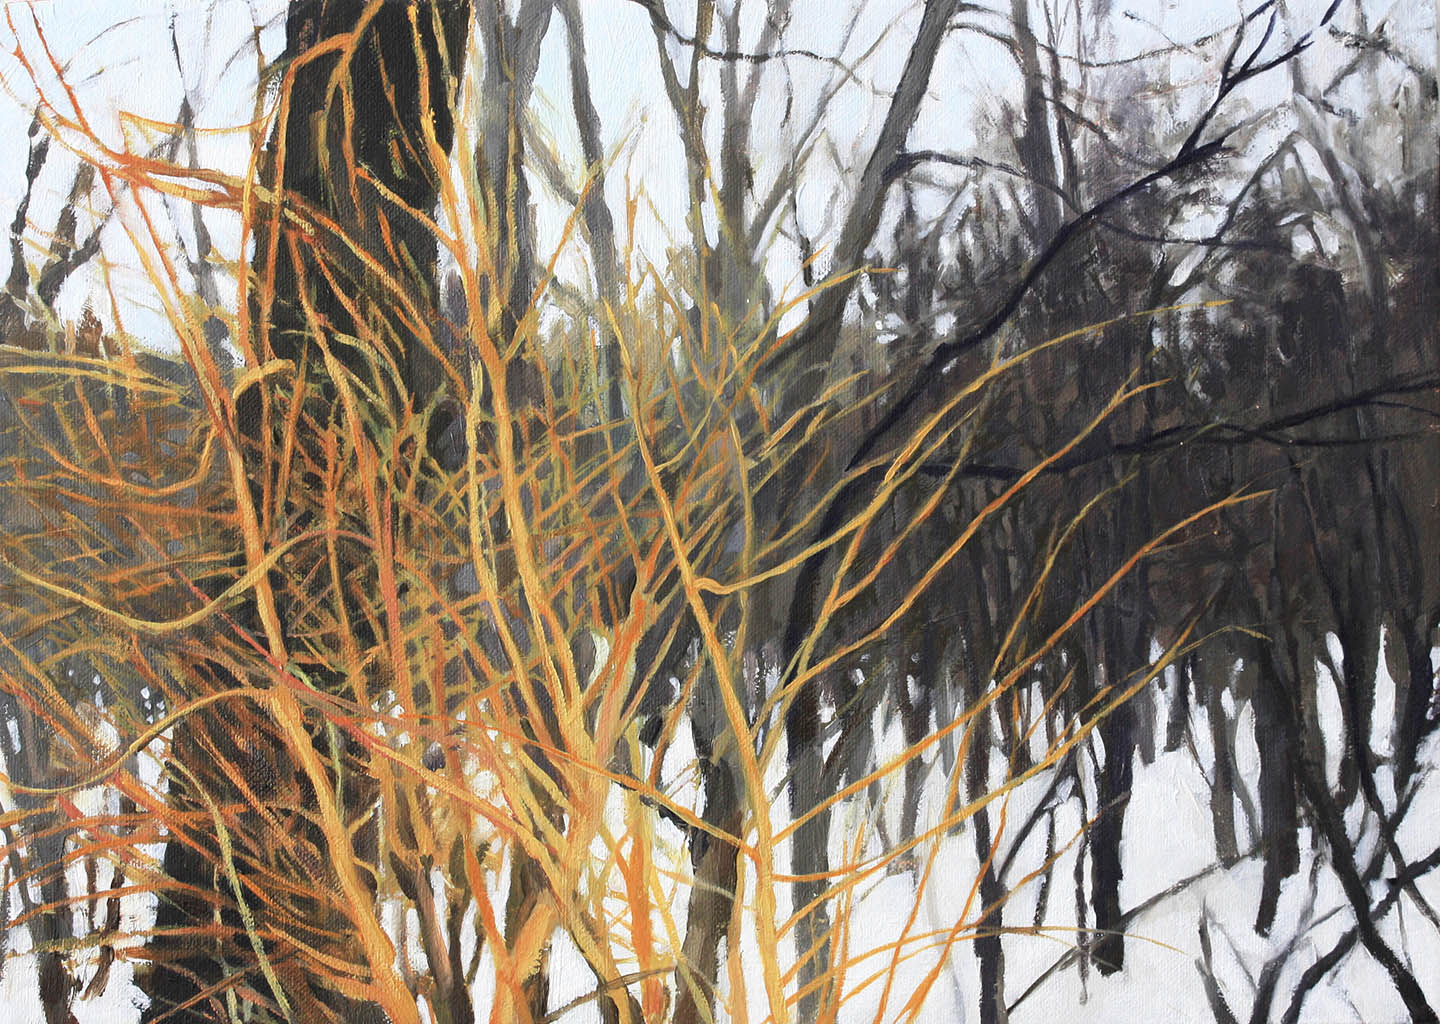 Yellow willows. ©Laura Shore 2015